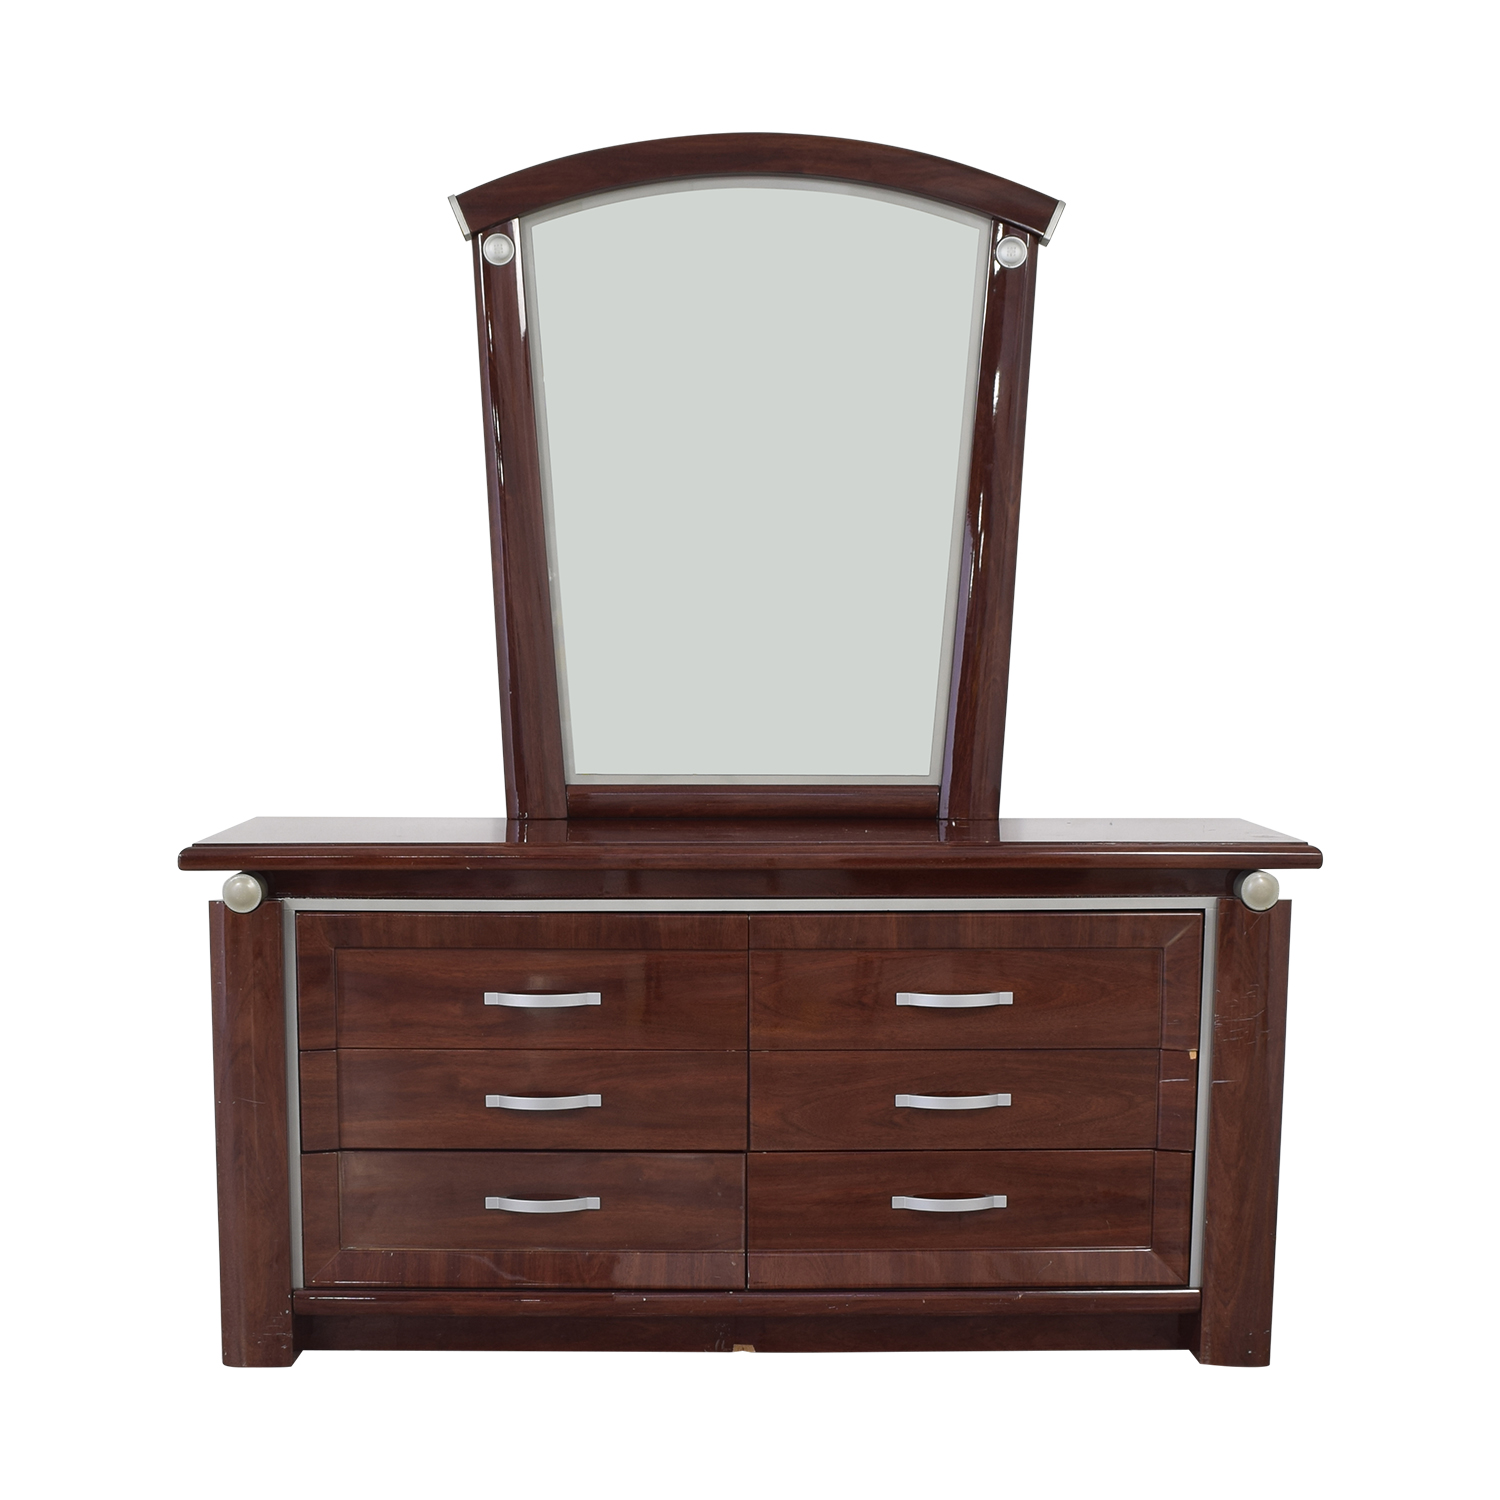 Arros Group Furniture Dresser with Mirror sale